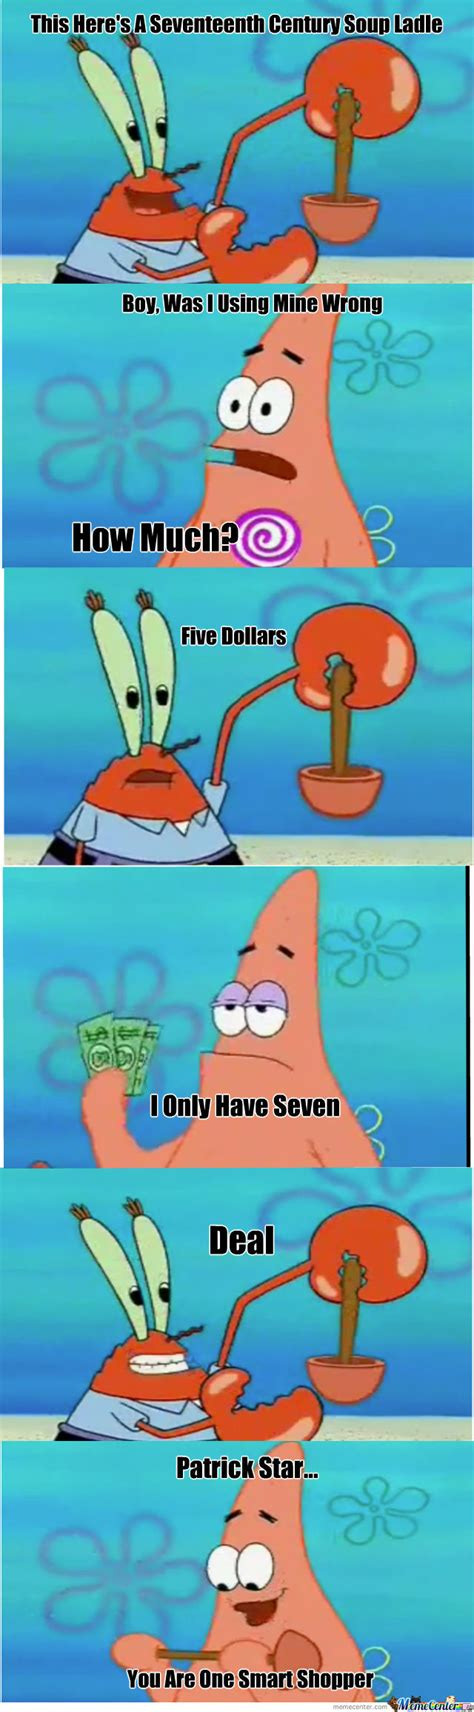 Patrick Star Memes - patrick star smart shopper by willholden meme center